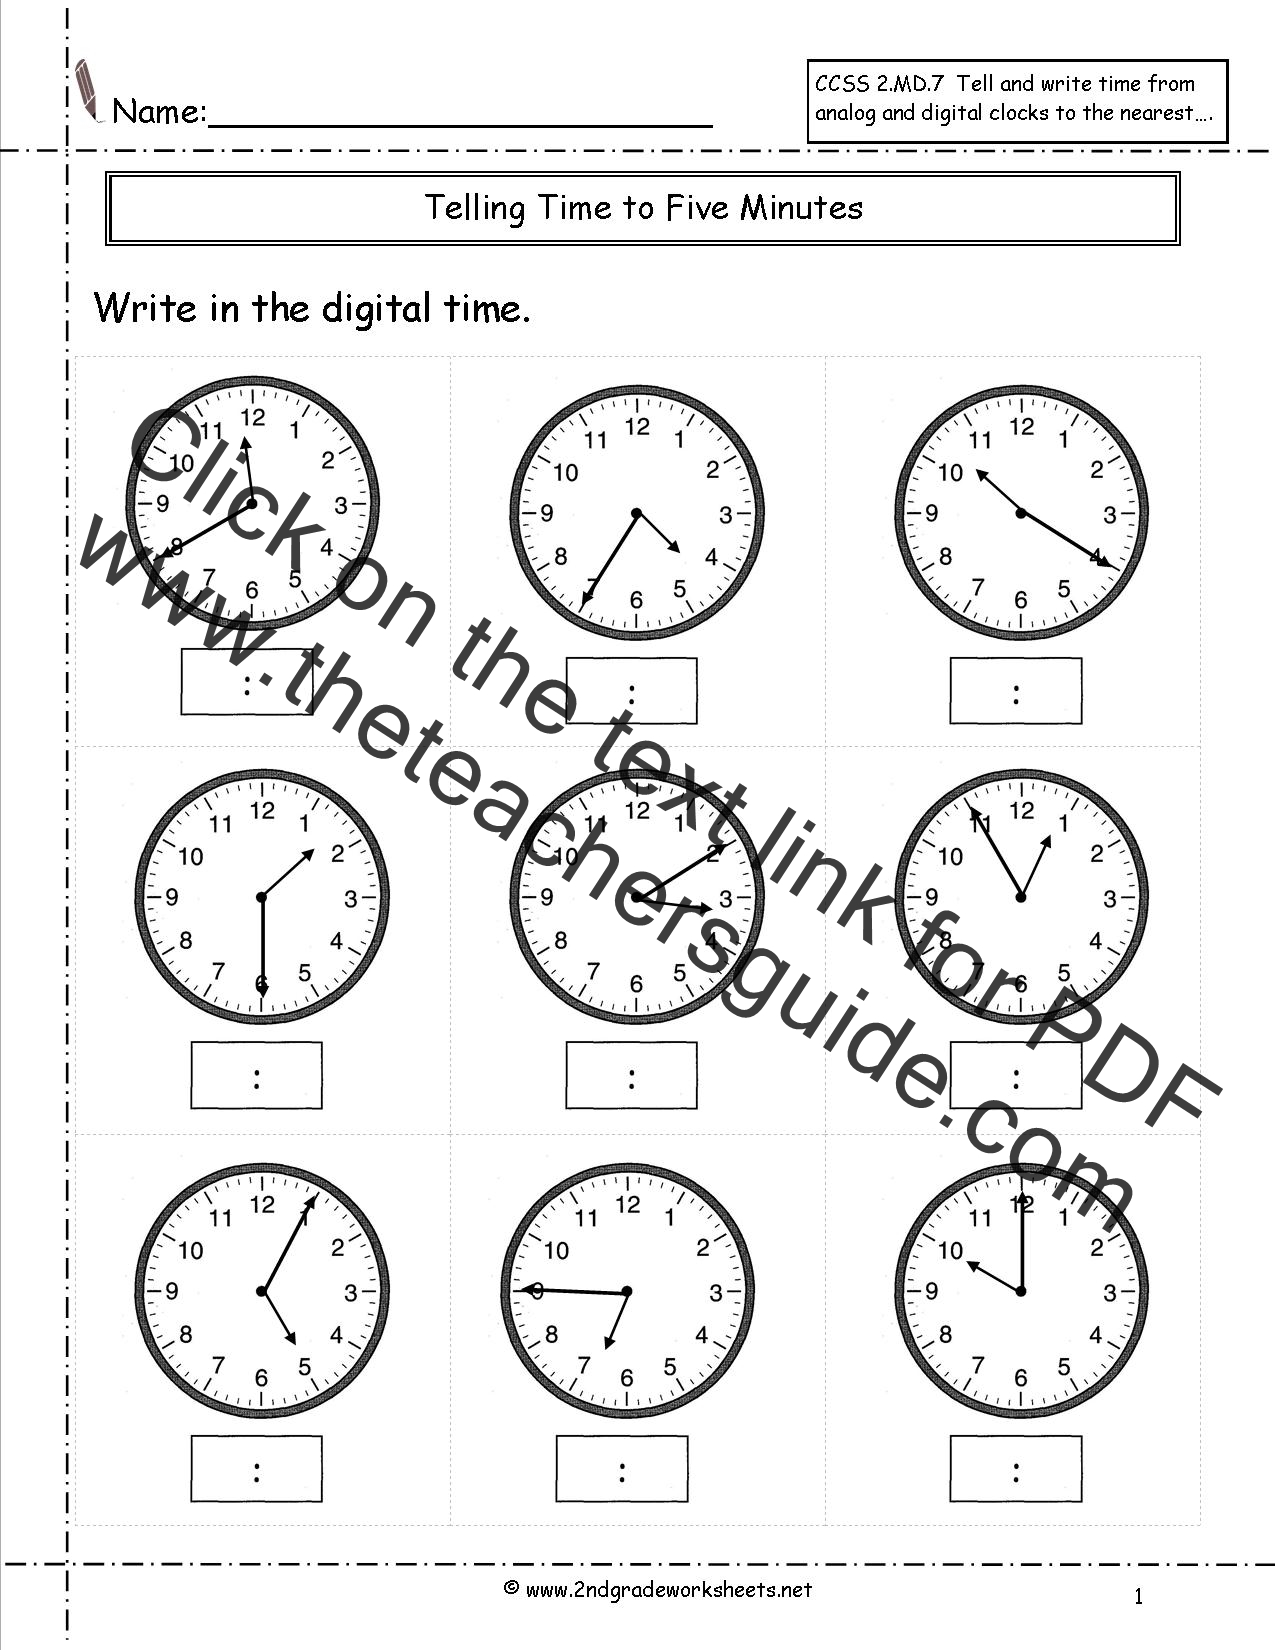 worksheet Digital Clock Worksheets ccss 2 md 7 worksheets telling time to five minutes nearest worksheet